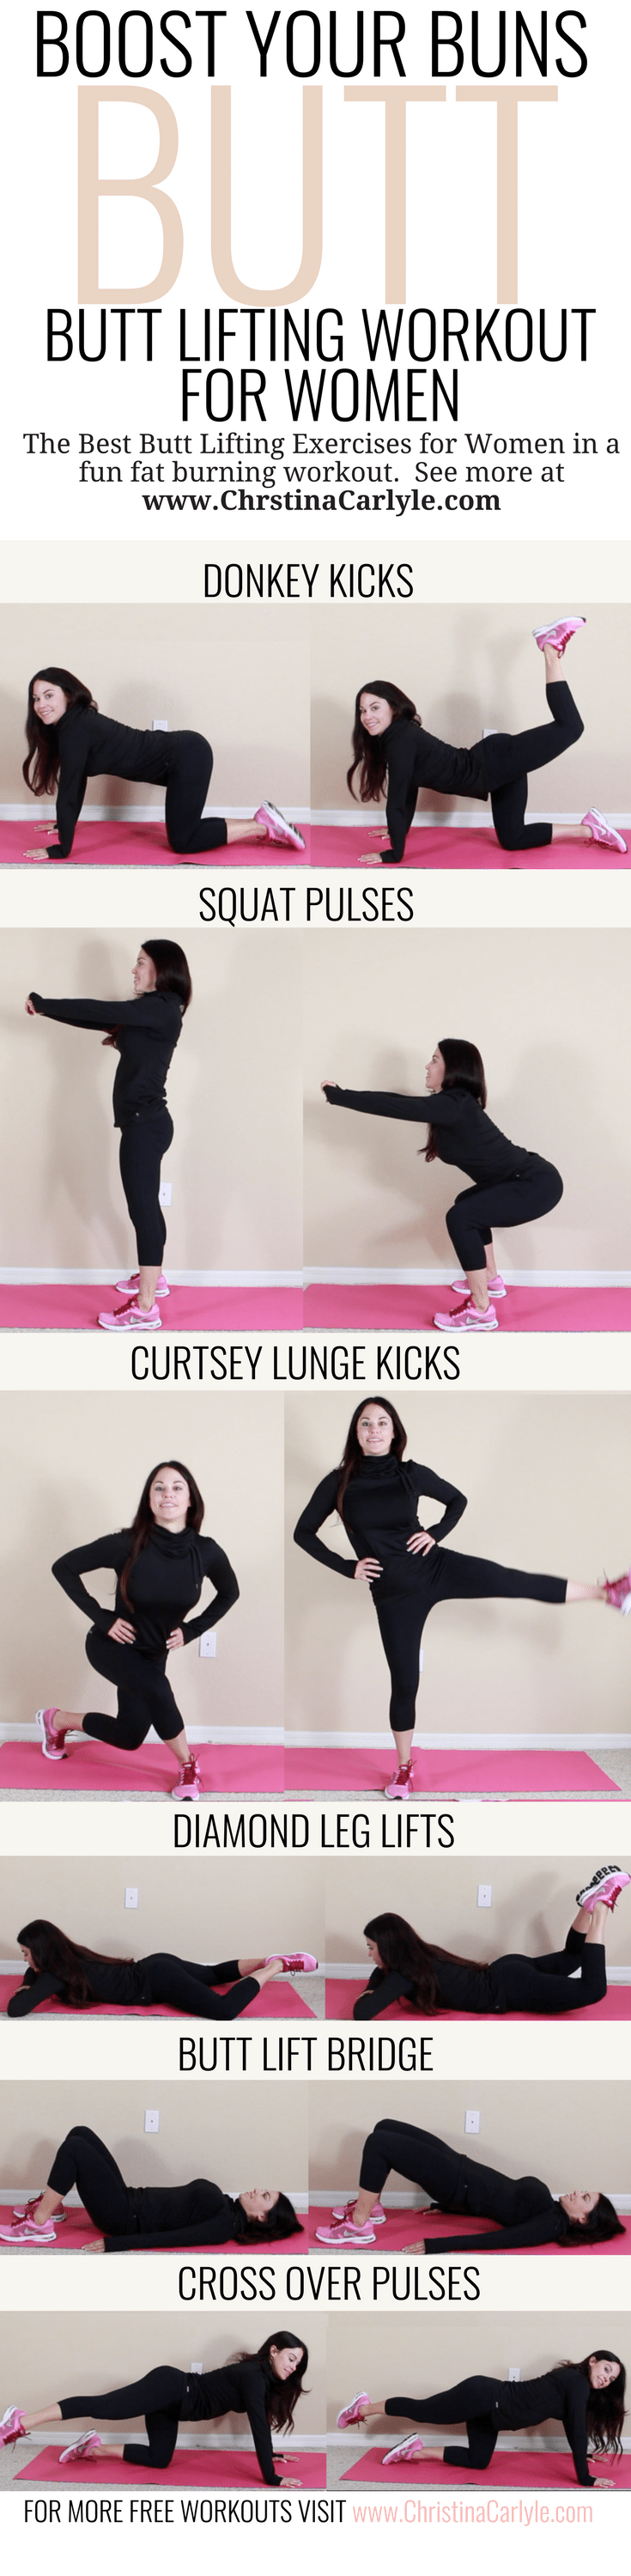 Best Butt Lifting Exercises in a Fun Fat Burning Workout for Women | Butt Exercises that will lift and tighten your booty fast. This butt workout is perfect for beginners, moms, and busy women that want a perky butt.